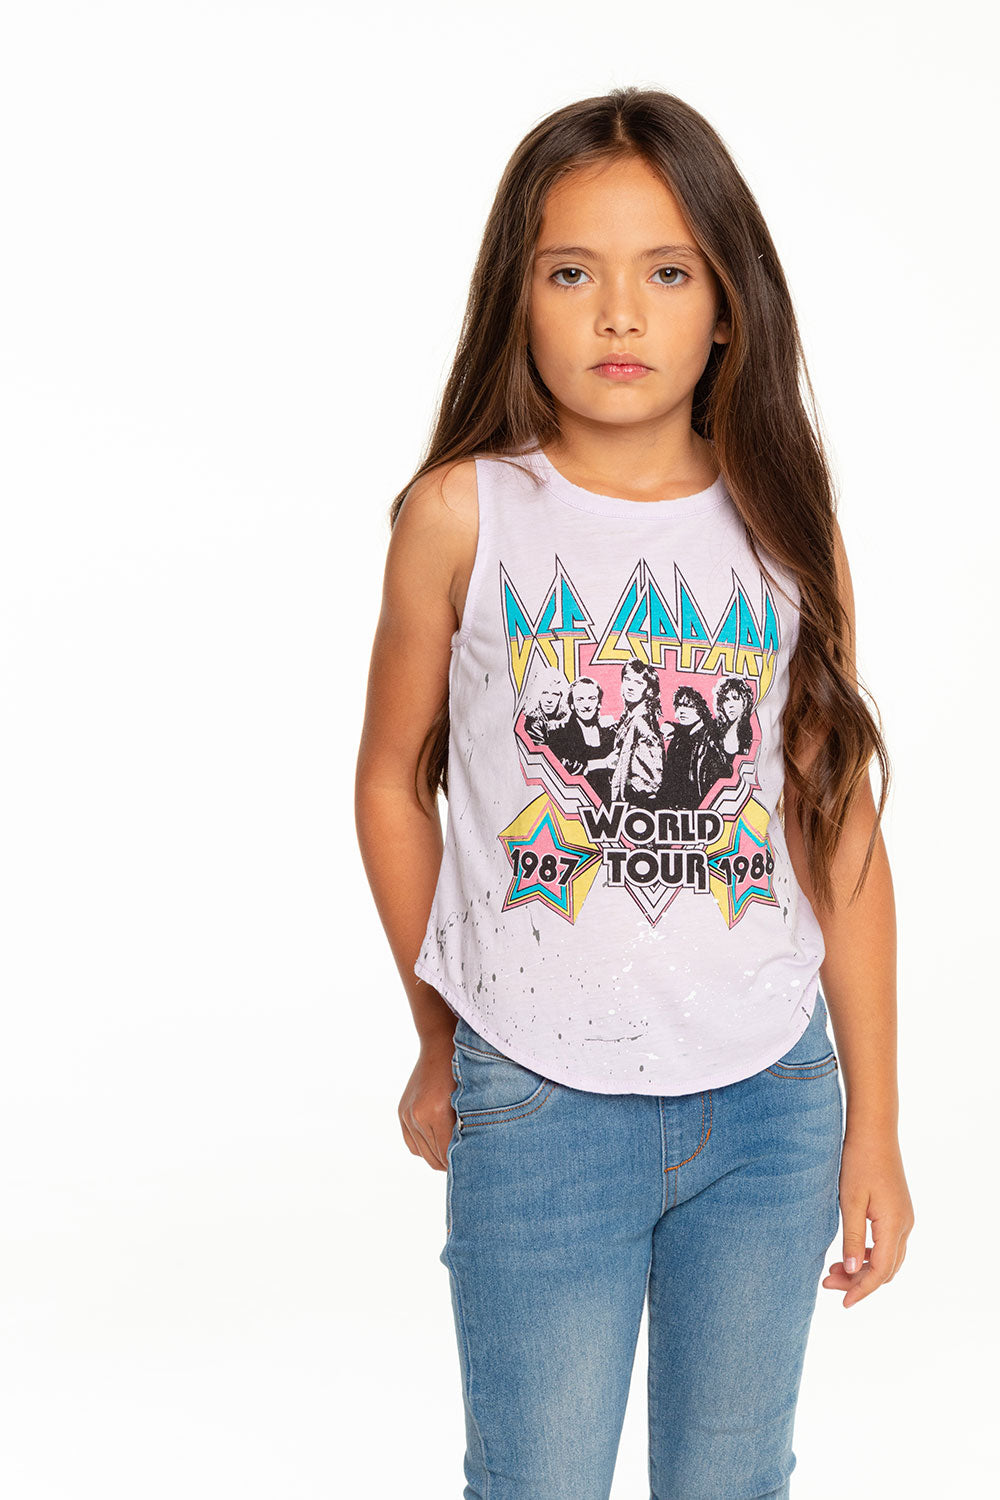 Def Leppard - World Tour GIRLS - chaserbrand